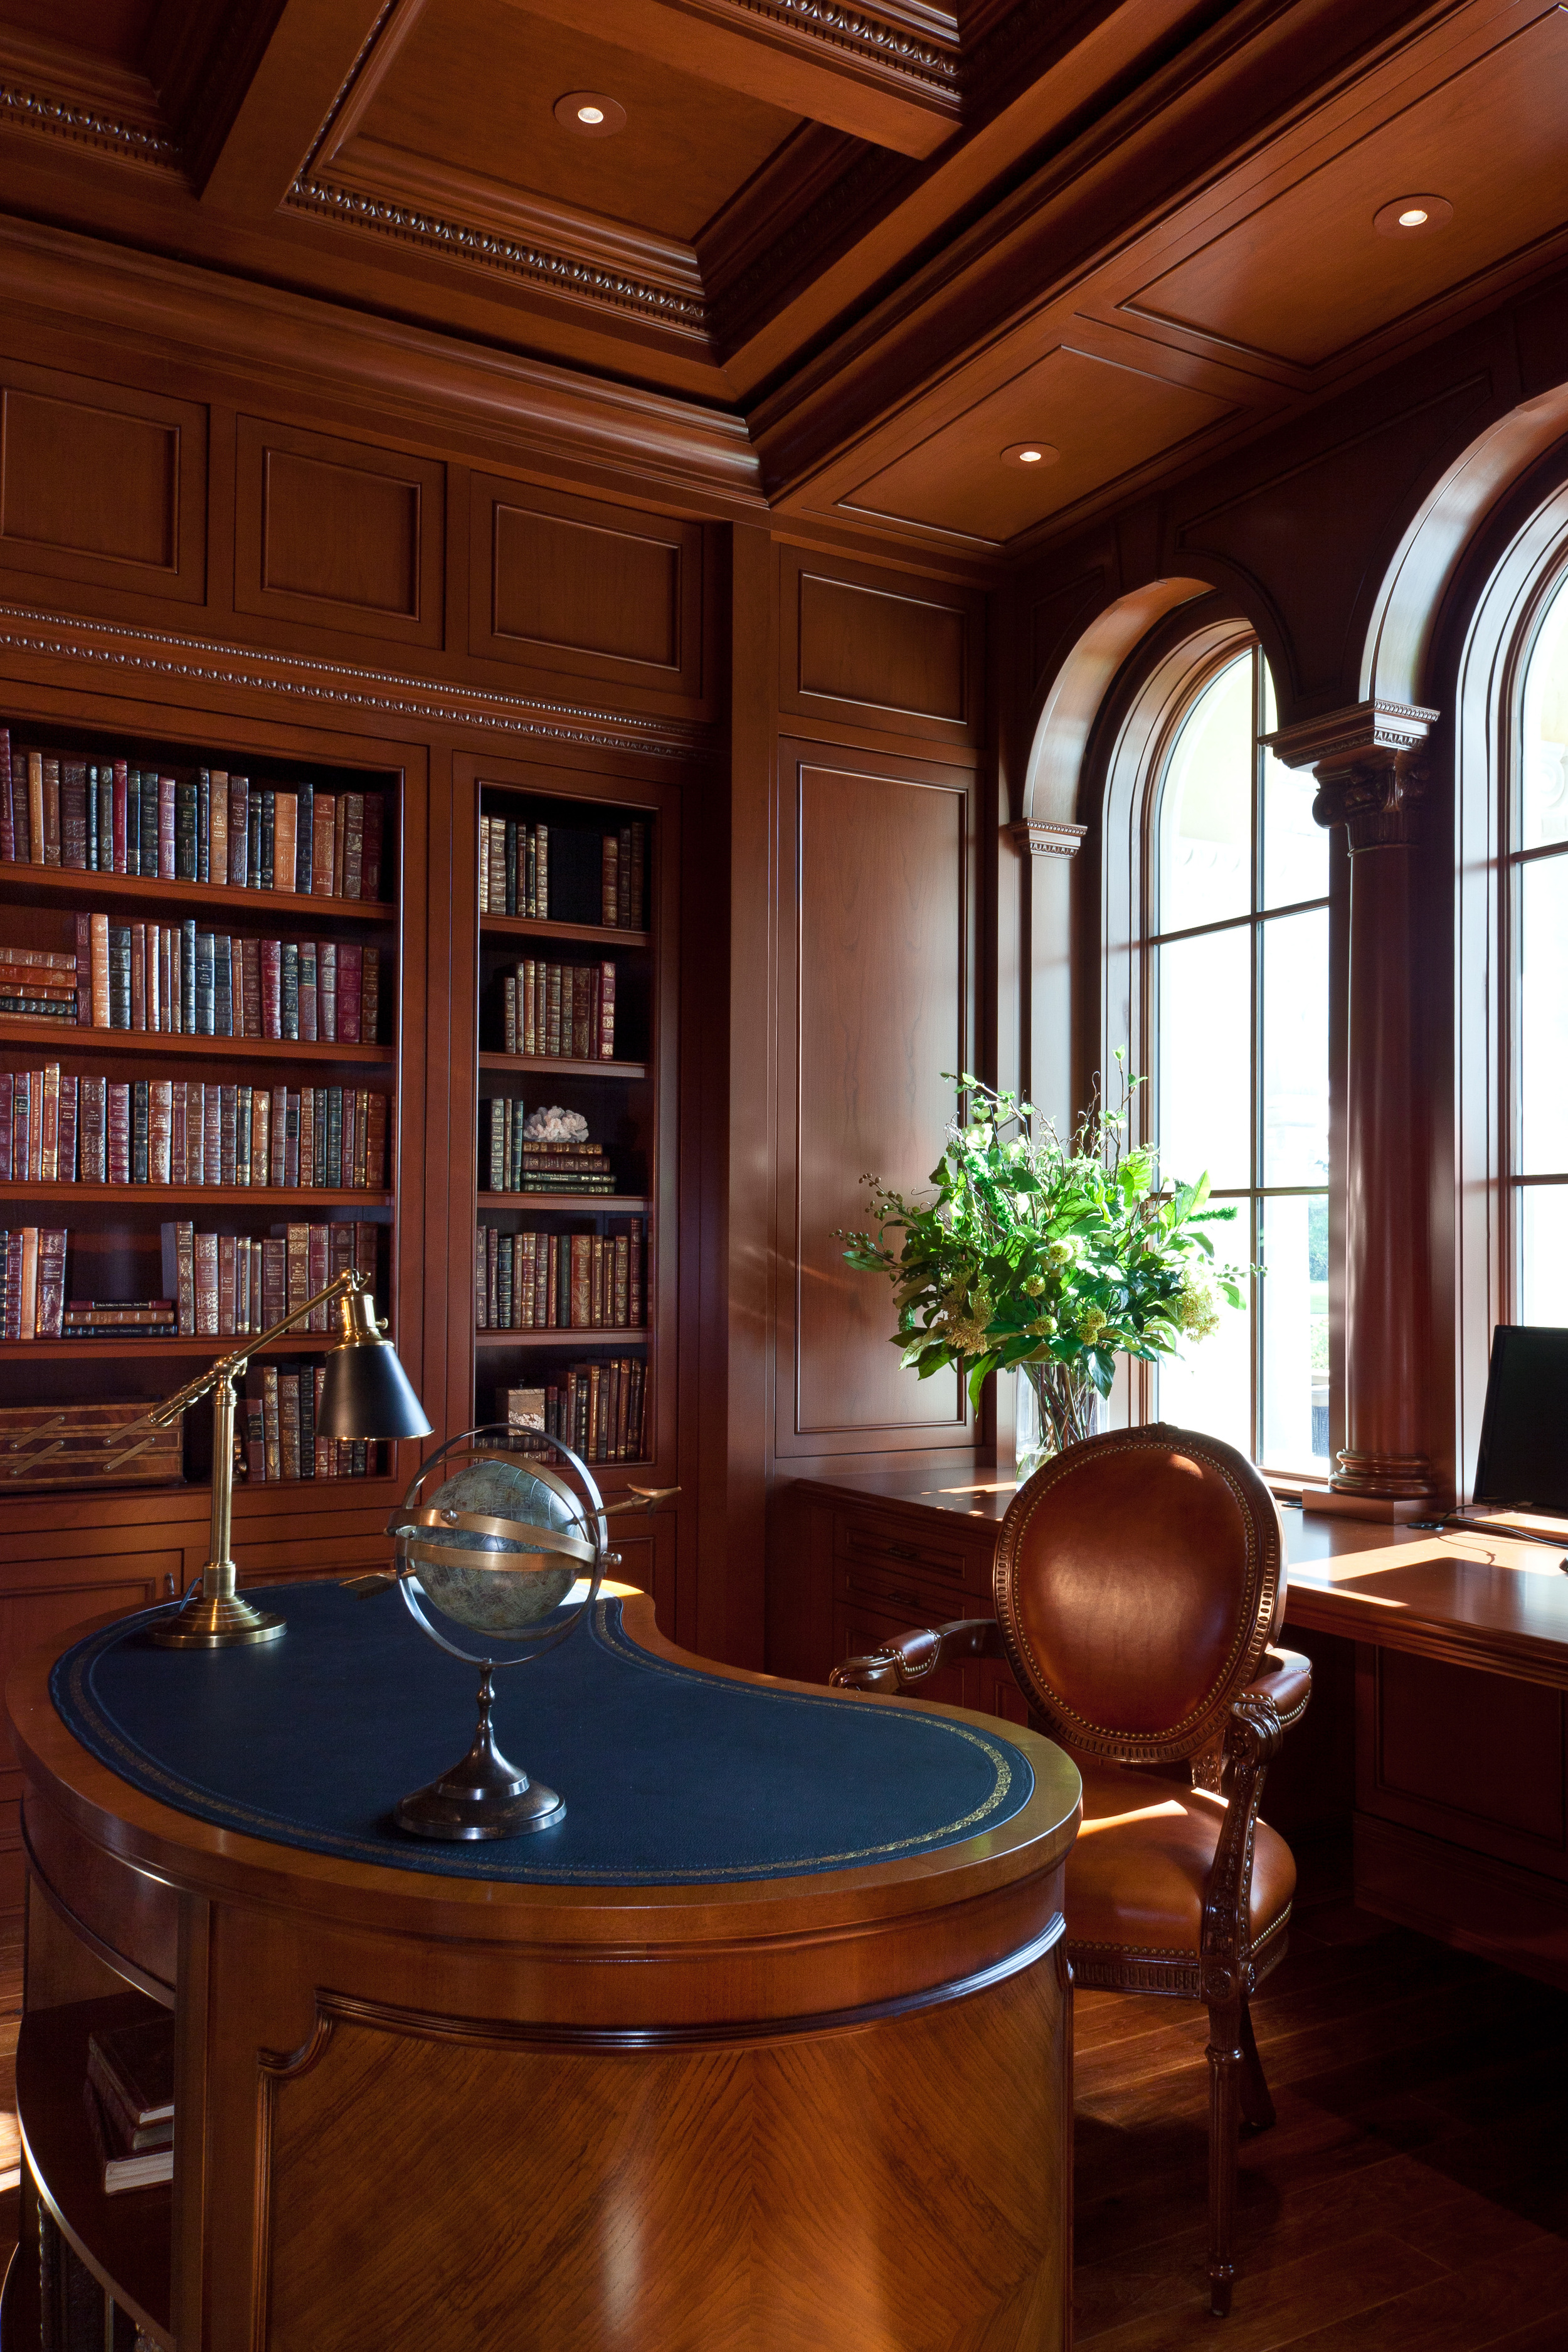 This vacation home is replete with custom cabinetry and finely detailed millwork, as epitomized by this inviting and functional study, which is perfectly planned and executed in rich cherry wood. Hidden in the window frame, remote controlled blinds descend to block the Florida sunshine.